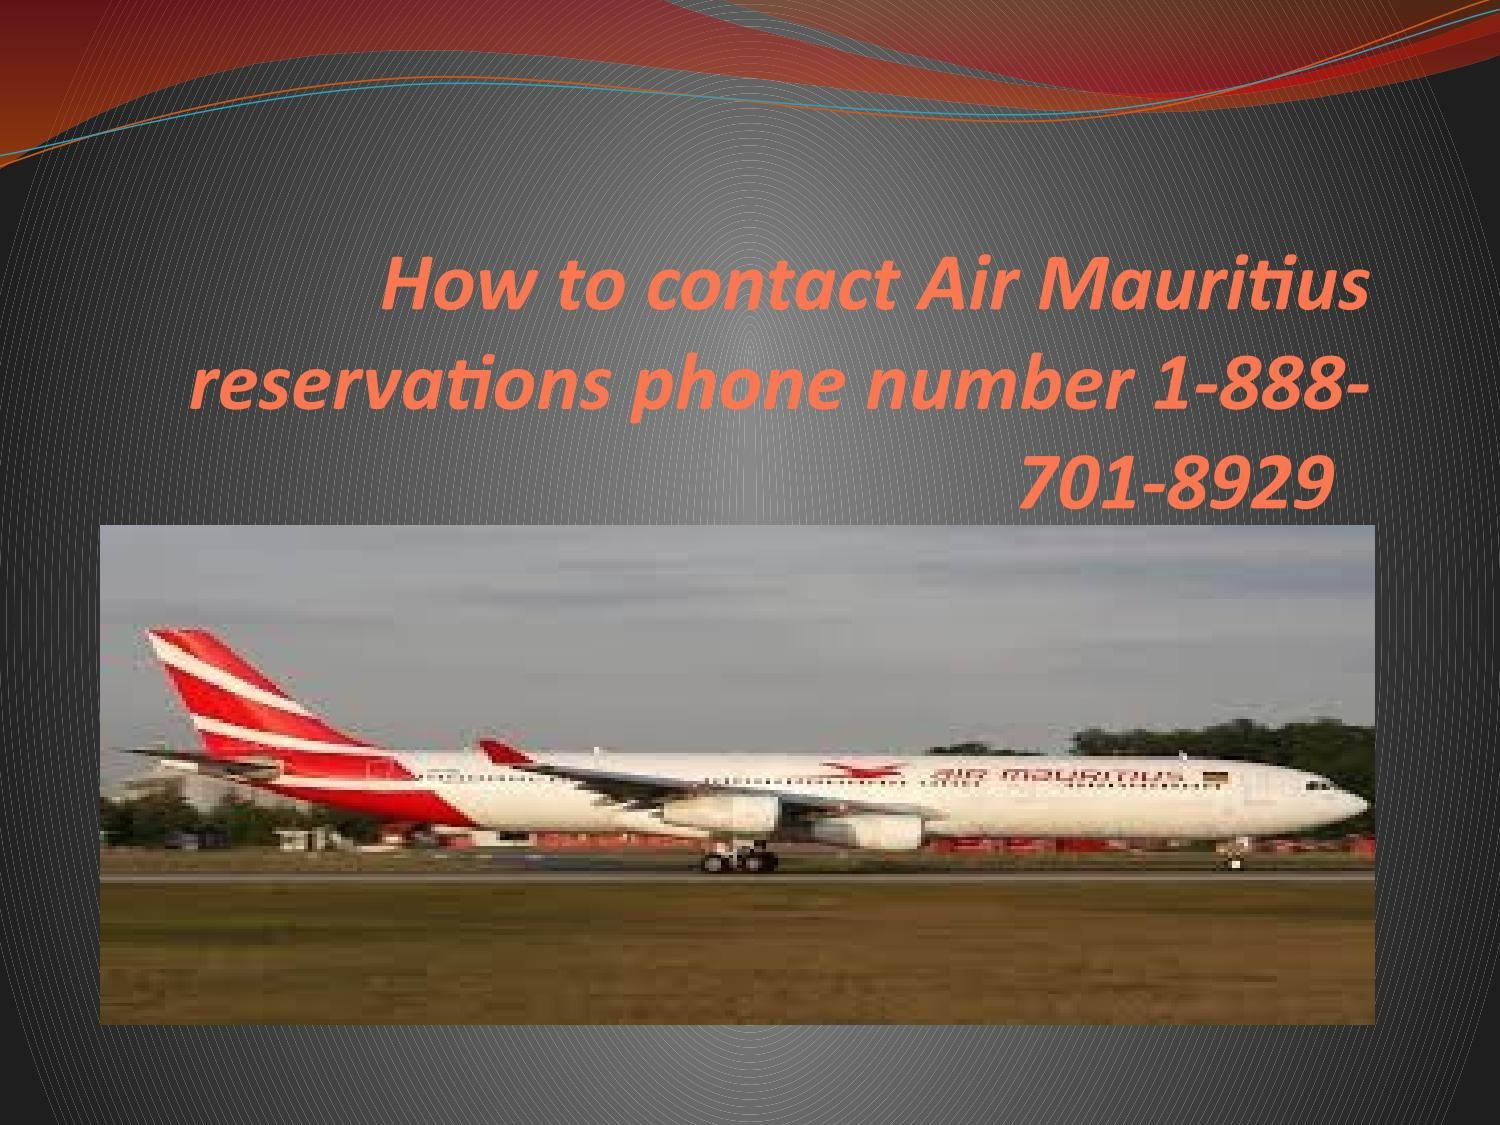 Air Mauritius Reservations phone number 18887018929